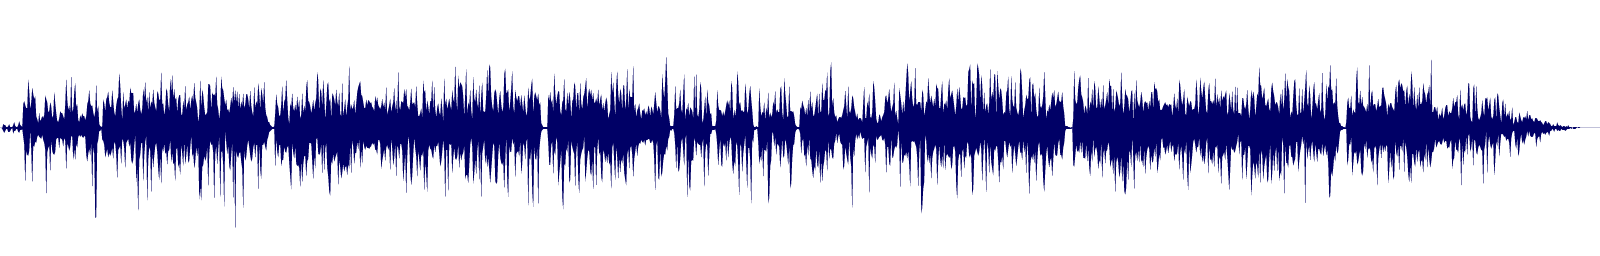 waveform of track #133480